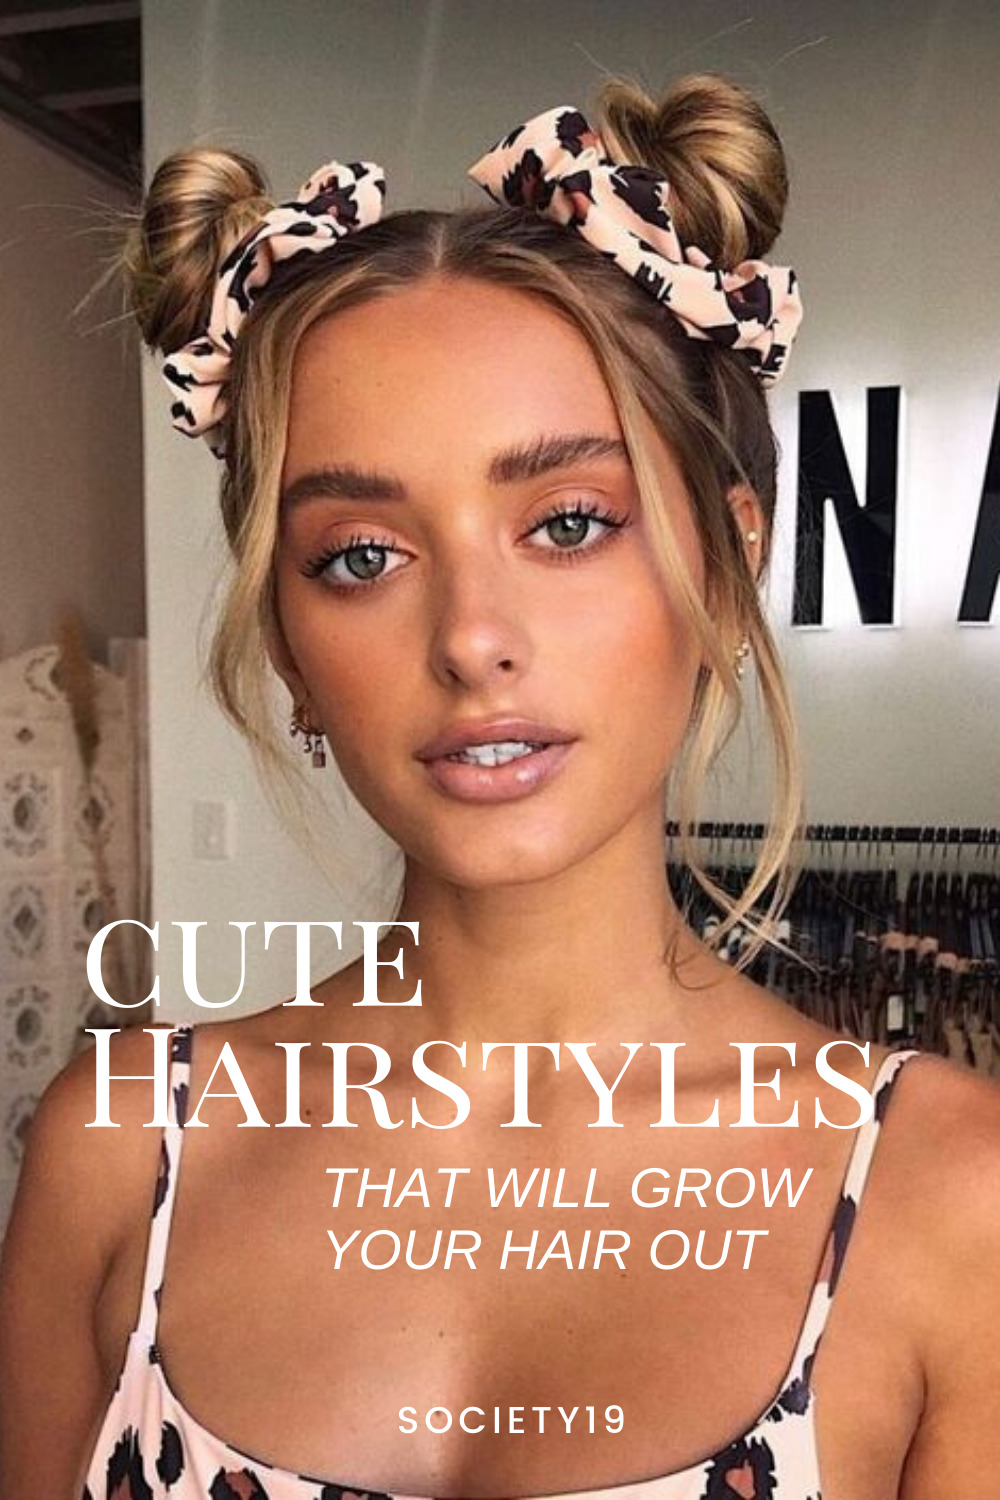 cute protective hairstyles, Cute Protective Hairstyles That Will Grow Your Hair Out